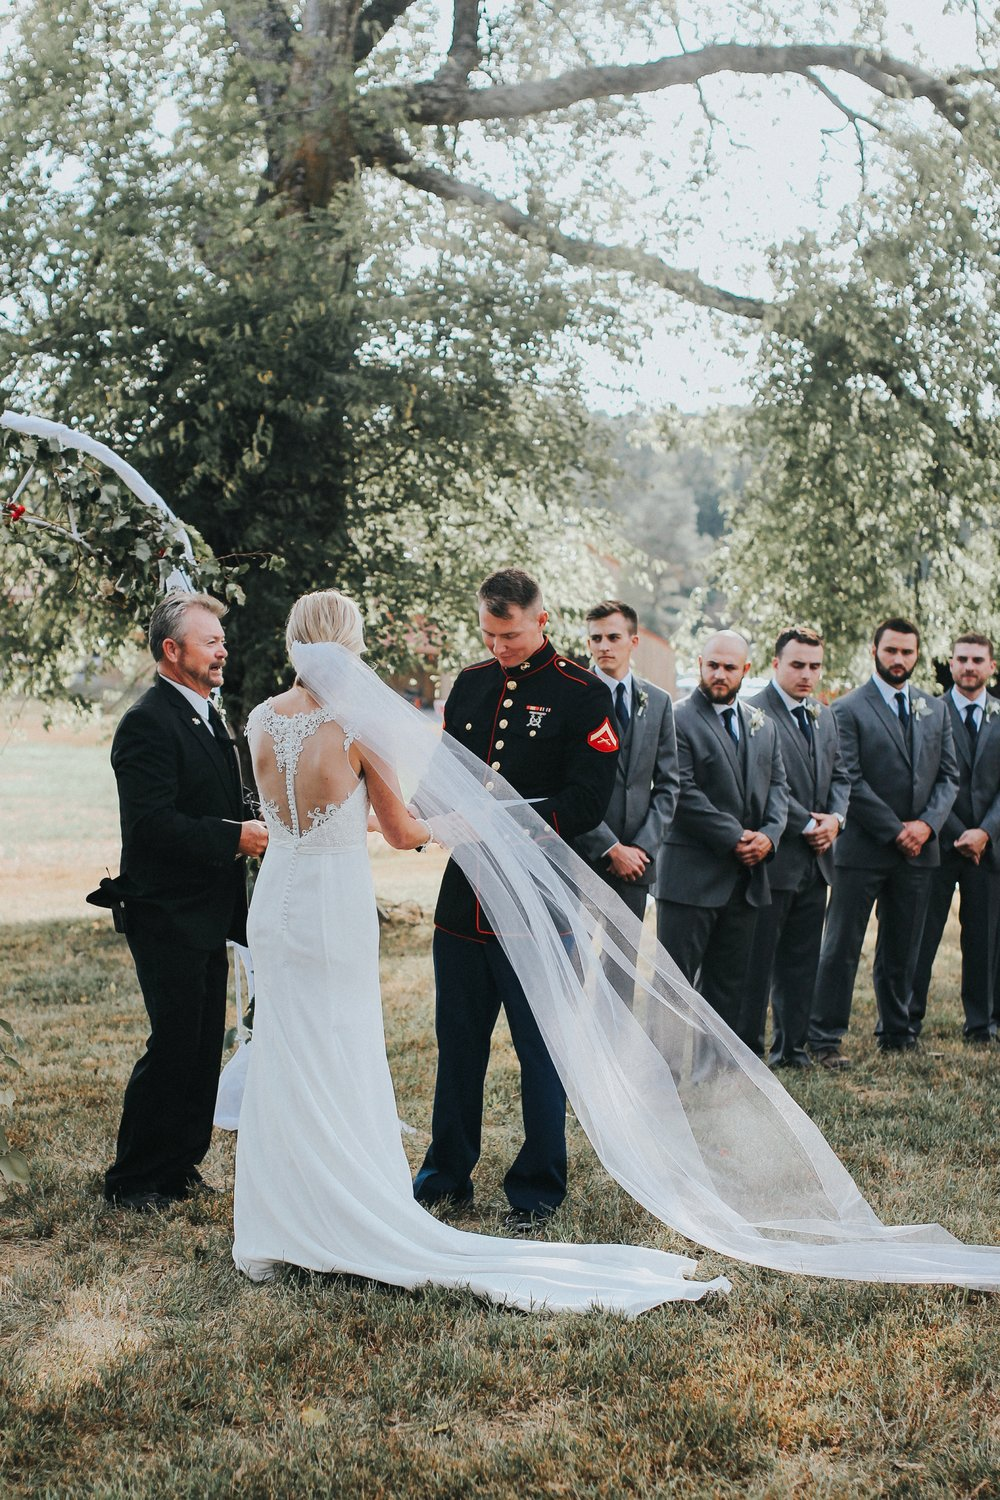 Virginia wedding photographer, Charlottesville wedding photographer, the hunt at Selma wedding, amelia virginia wedding photographer_0184.jpg